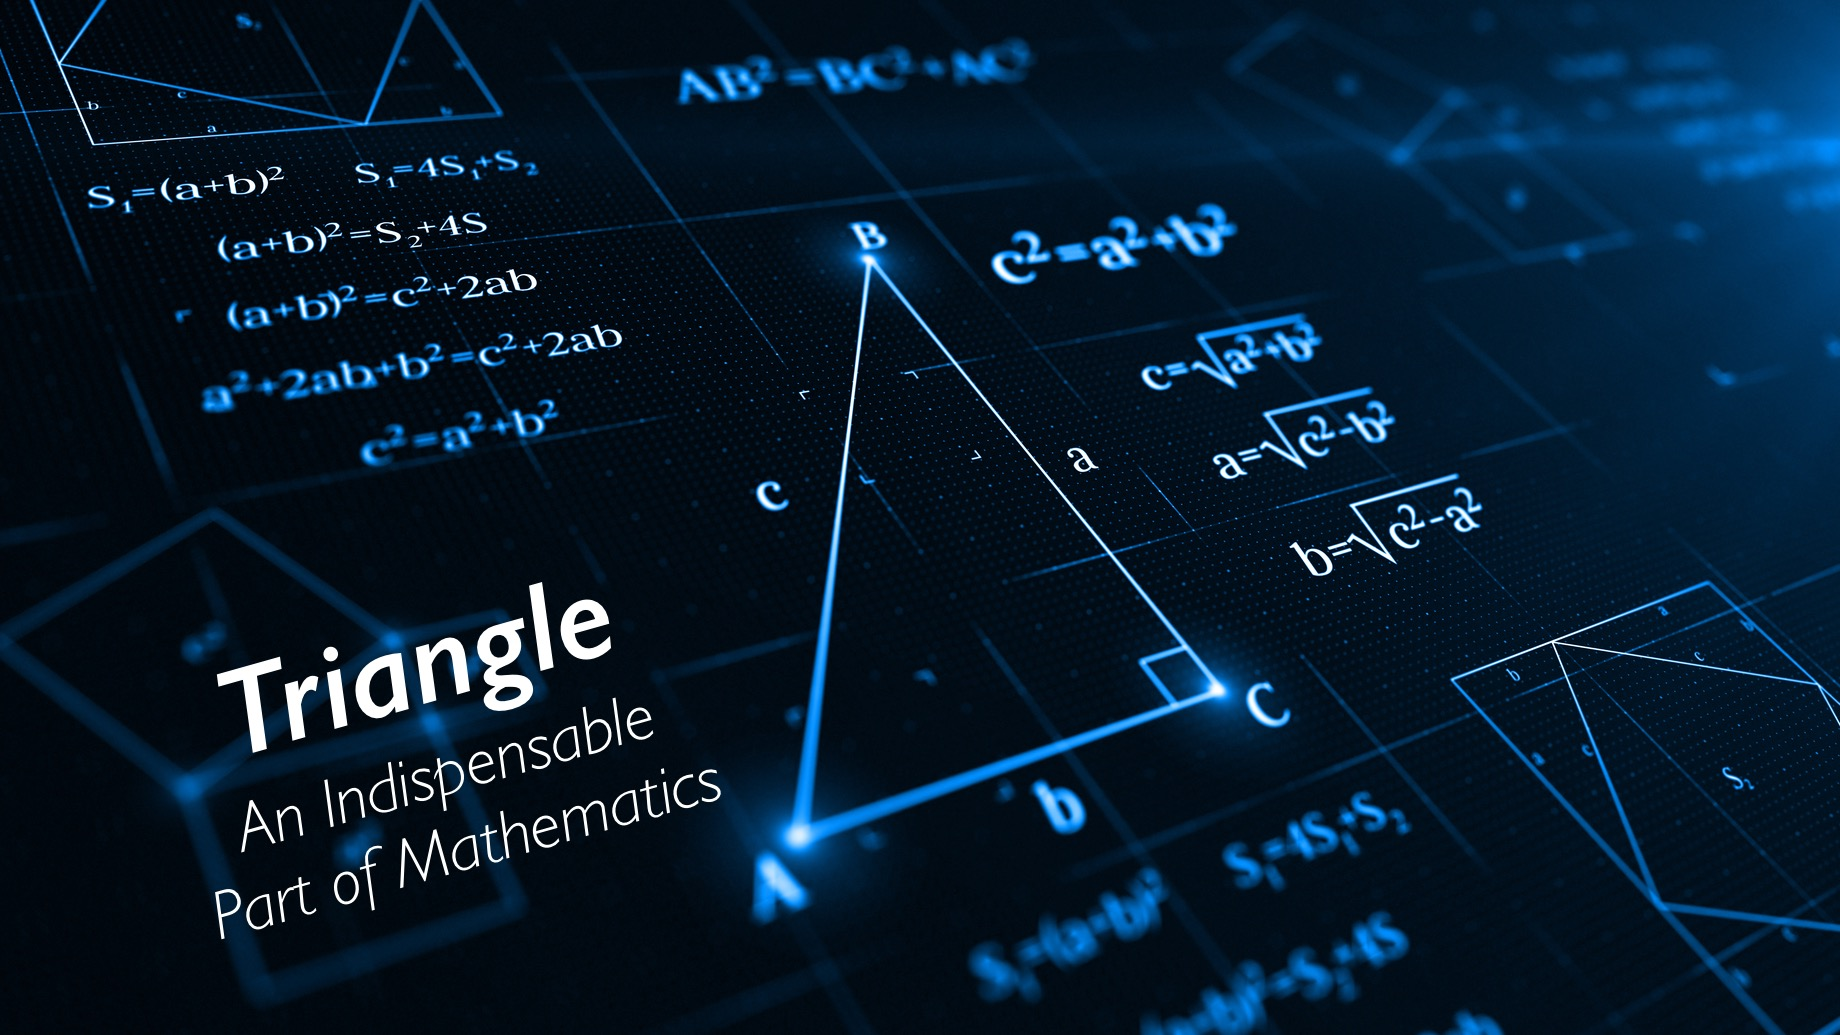 Triangle - An Indispensable Part of Mathematics